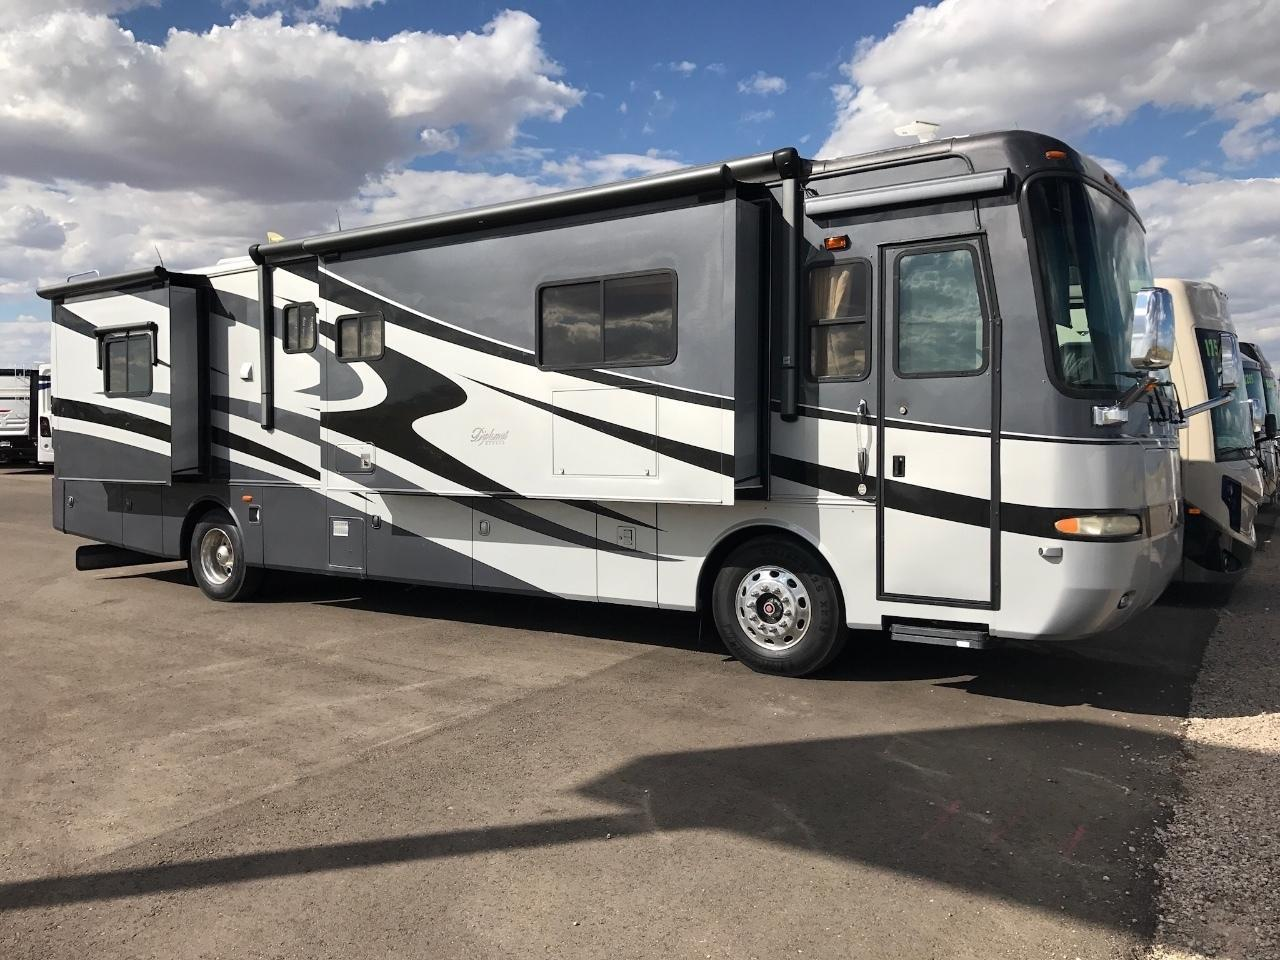 new or used monaco diplomat 3 slides 1 2 bath rvs for sale